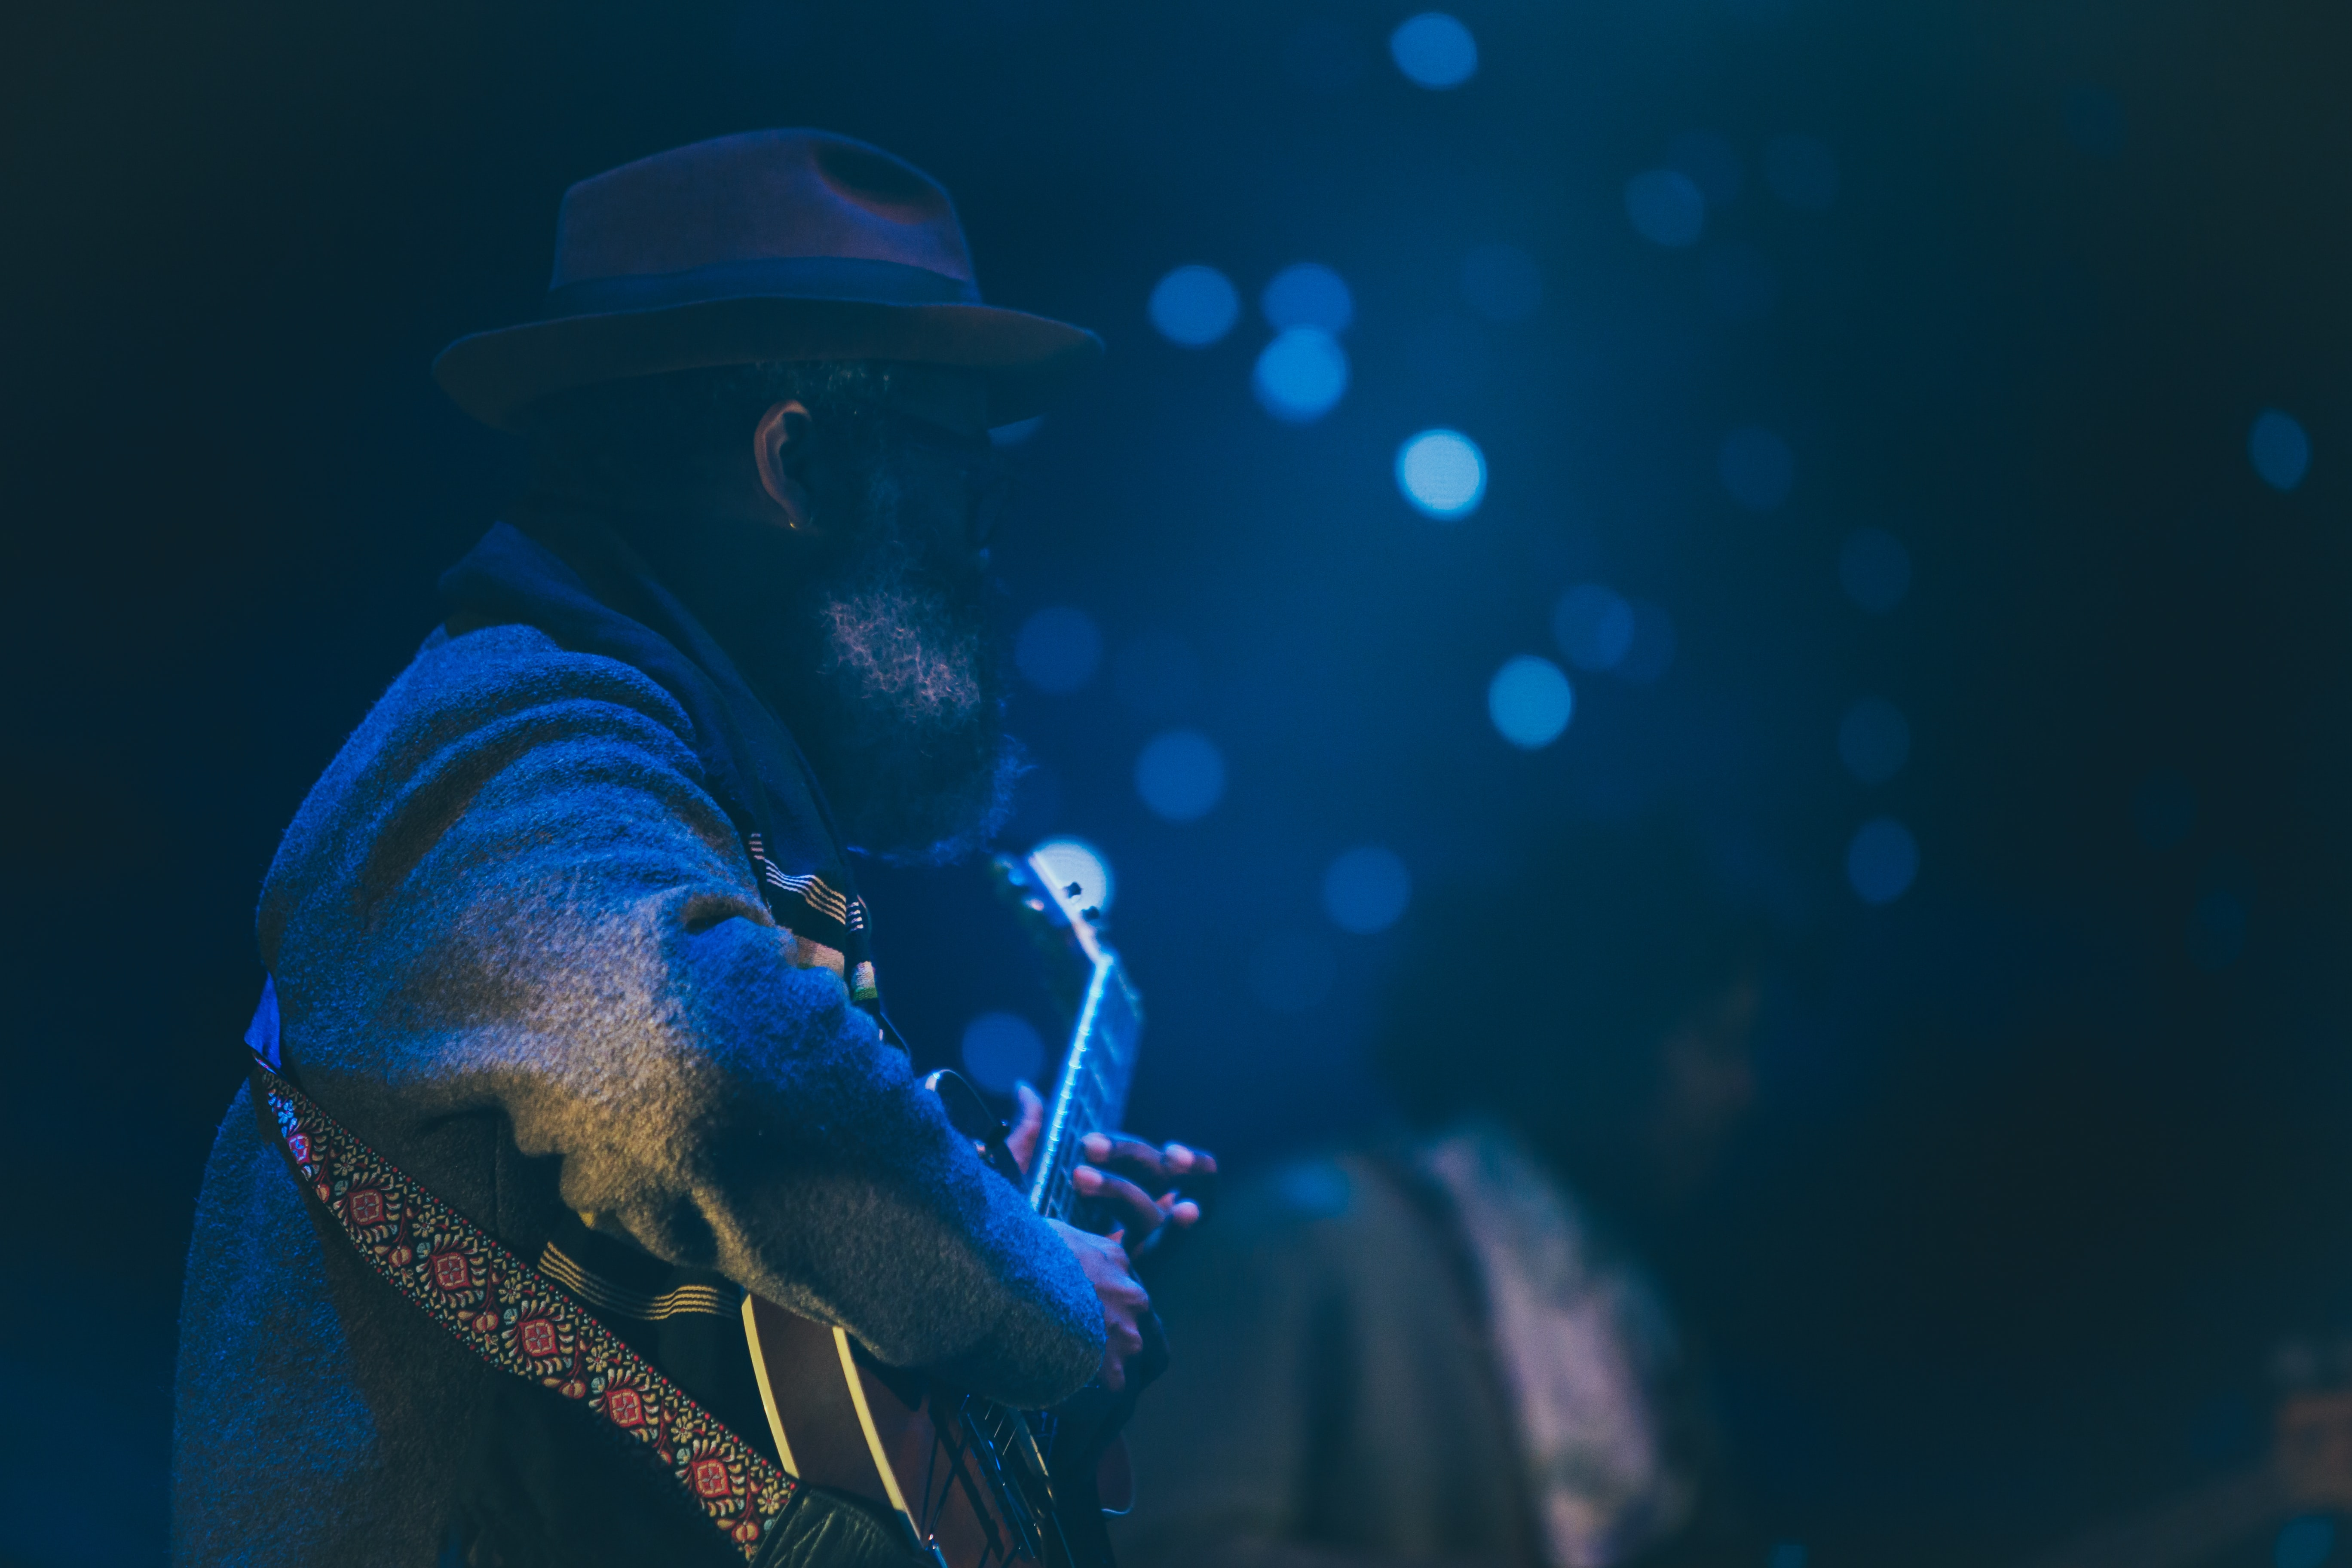 A bearded man in a hat playing the guitar with bokeh effect in the background